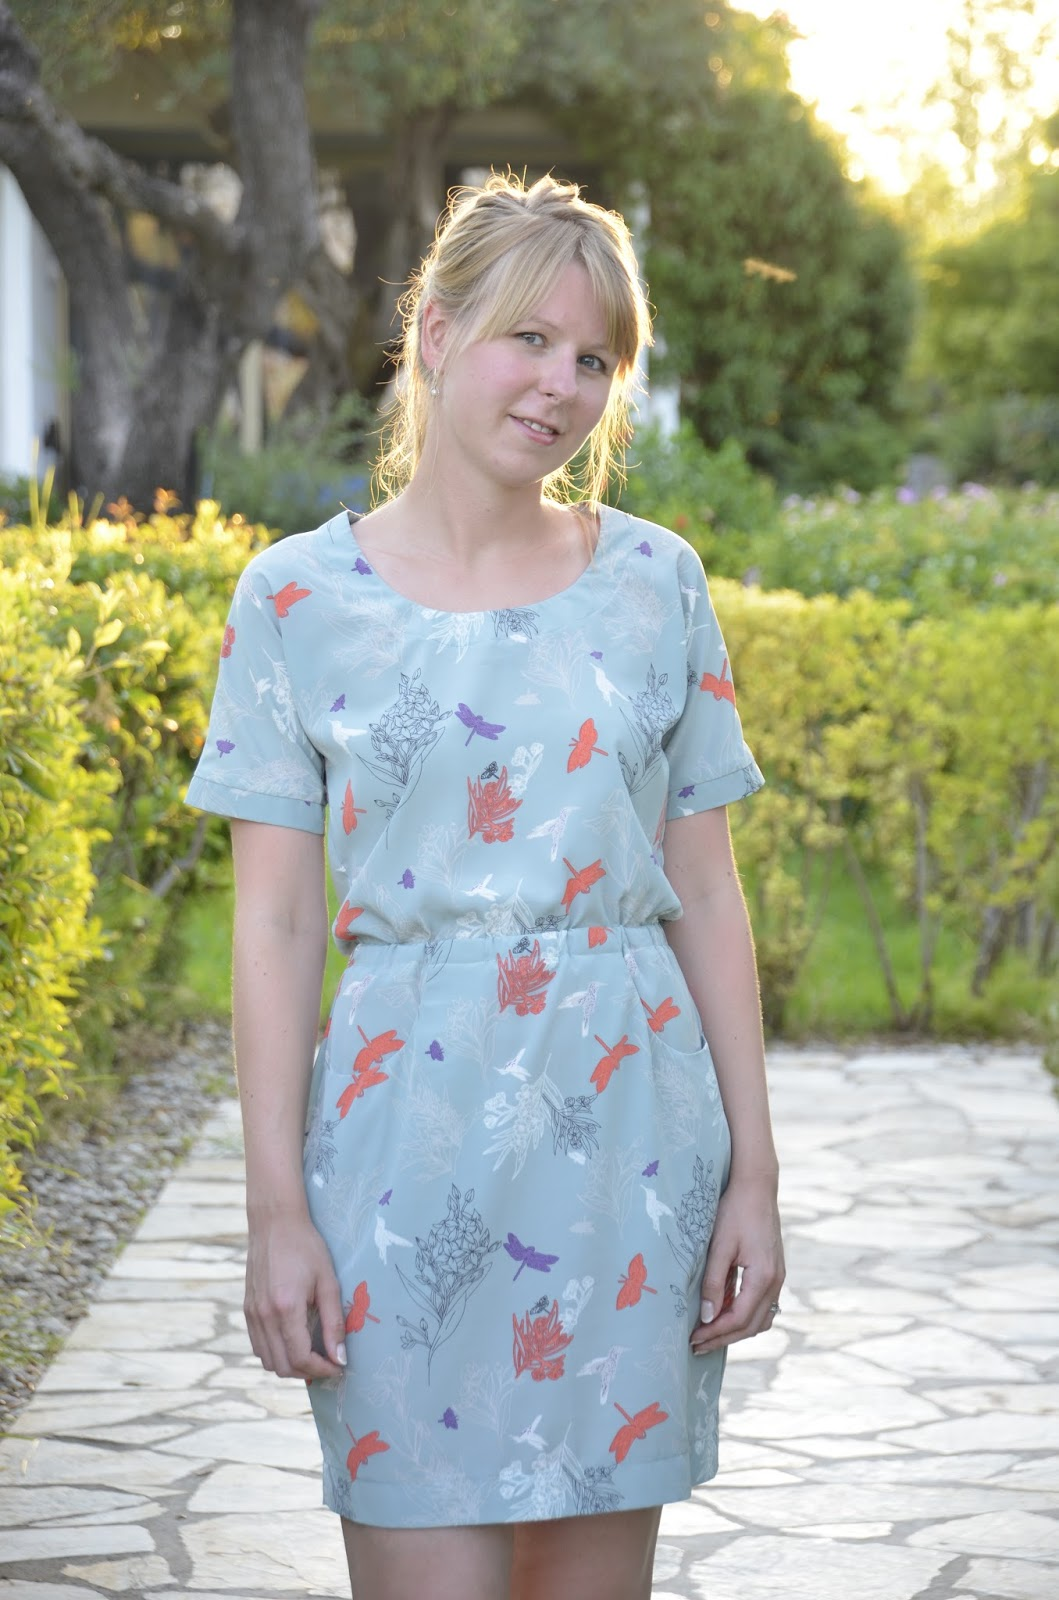 Ela Sews And Doesn\'t Sleep: Honey Moon Sewing: The Bettine Dress.